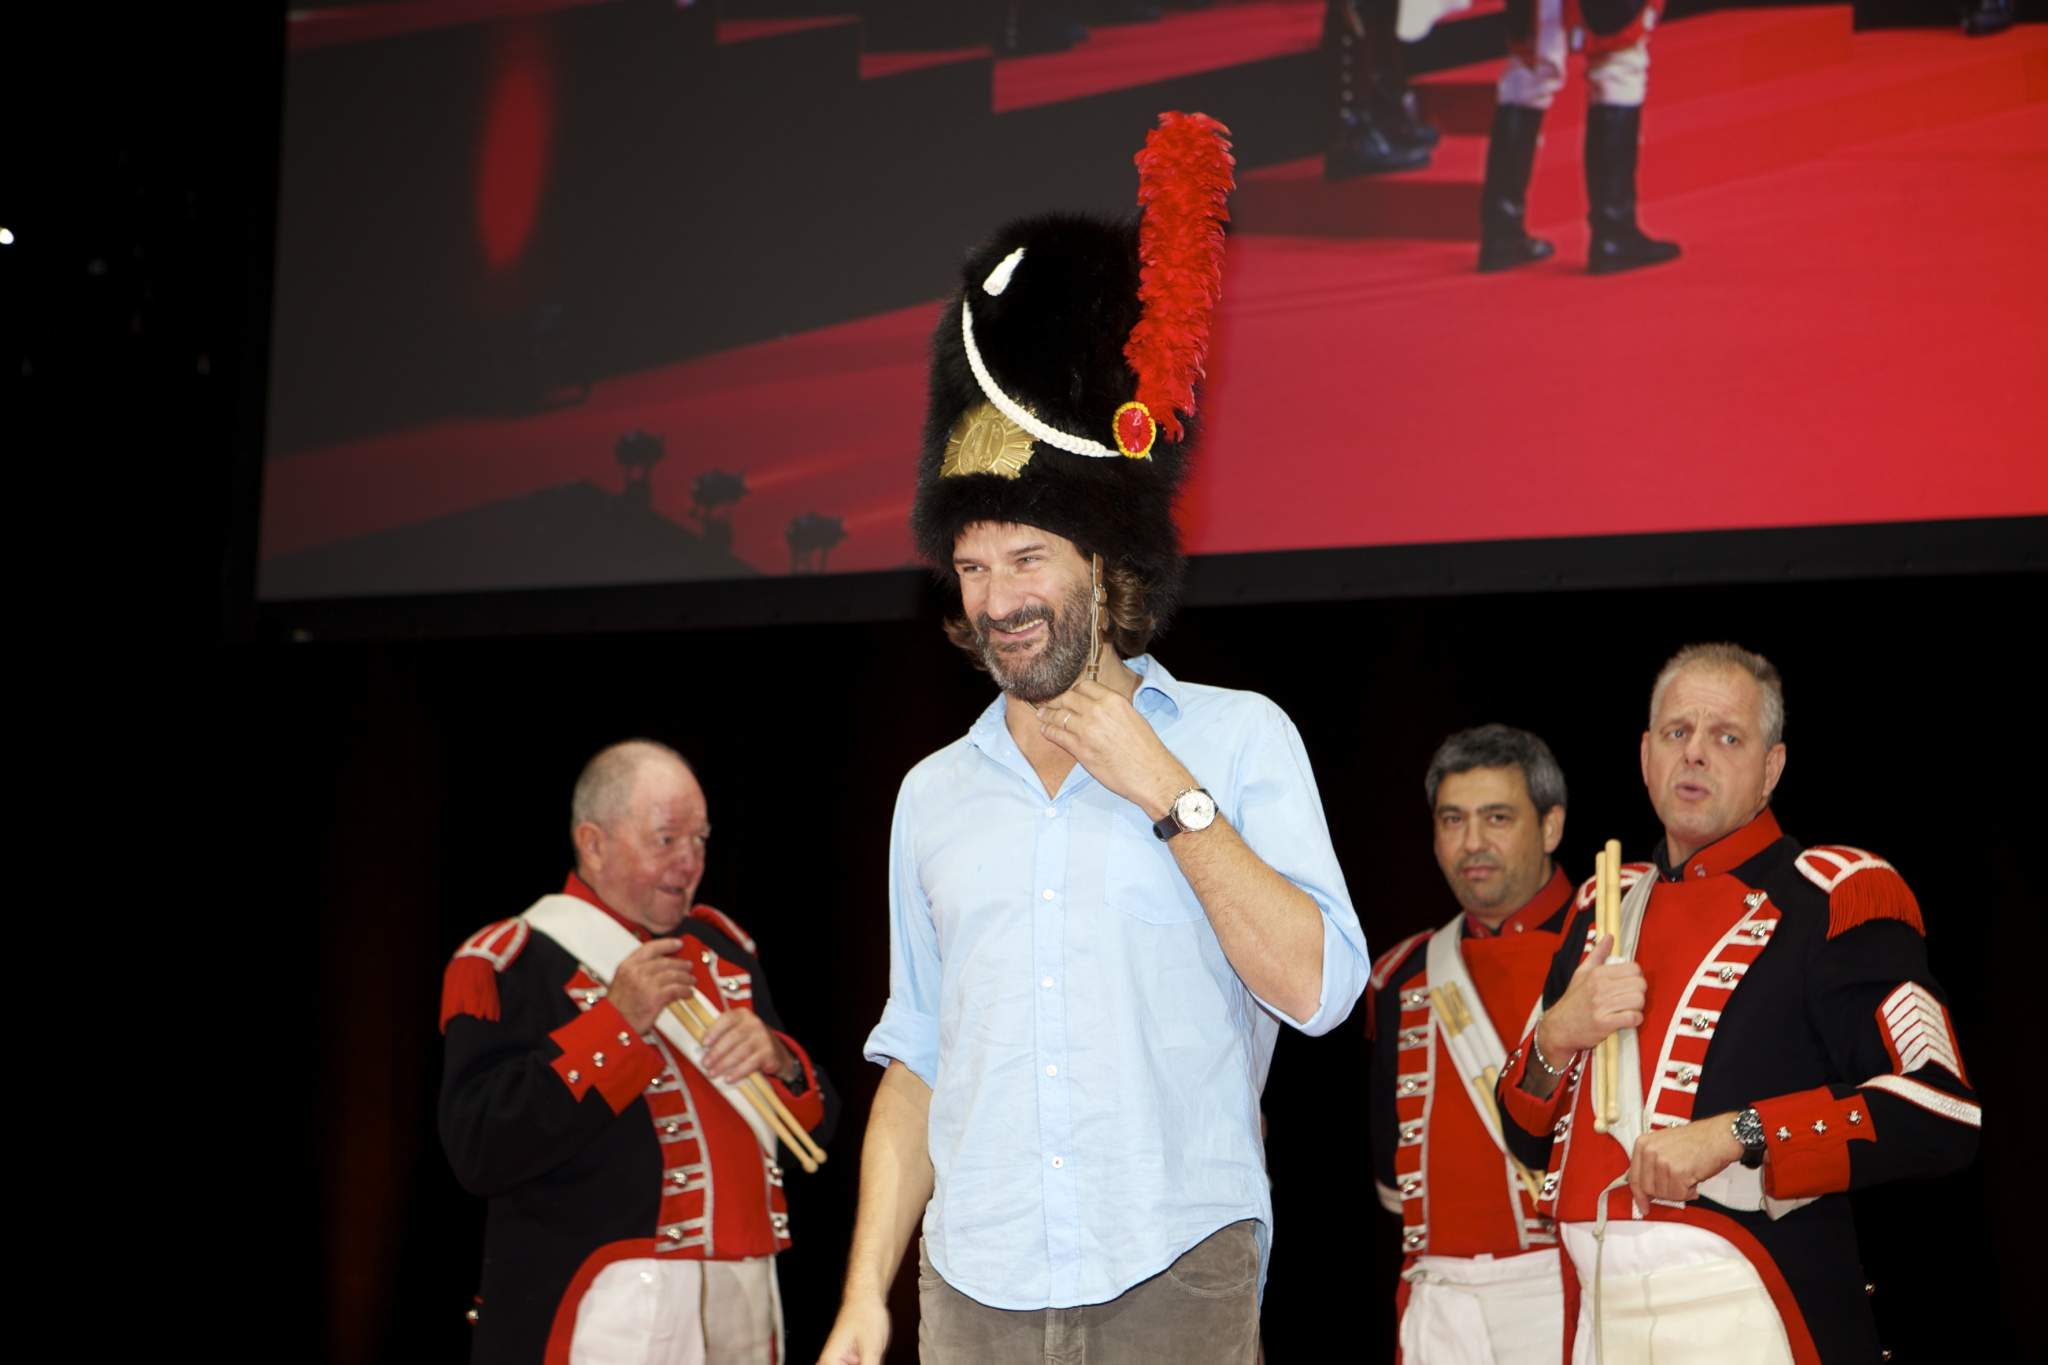 Frédéric Beigbeder (MC of the prize-giving ceremony of the GPHG 2014) and the Vieux Grenadiers of Geneva